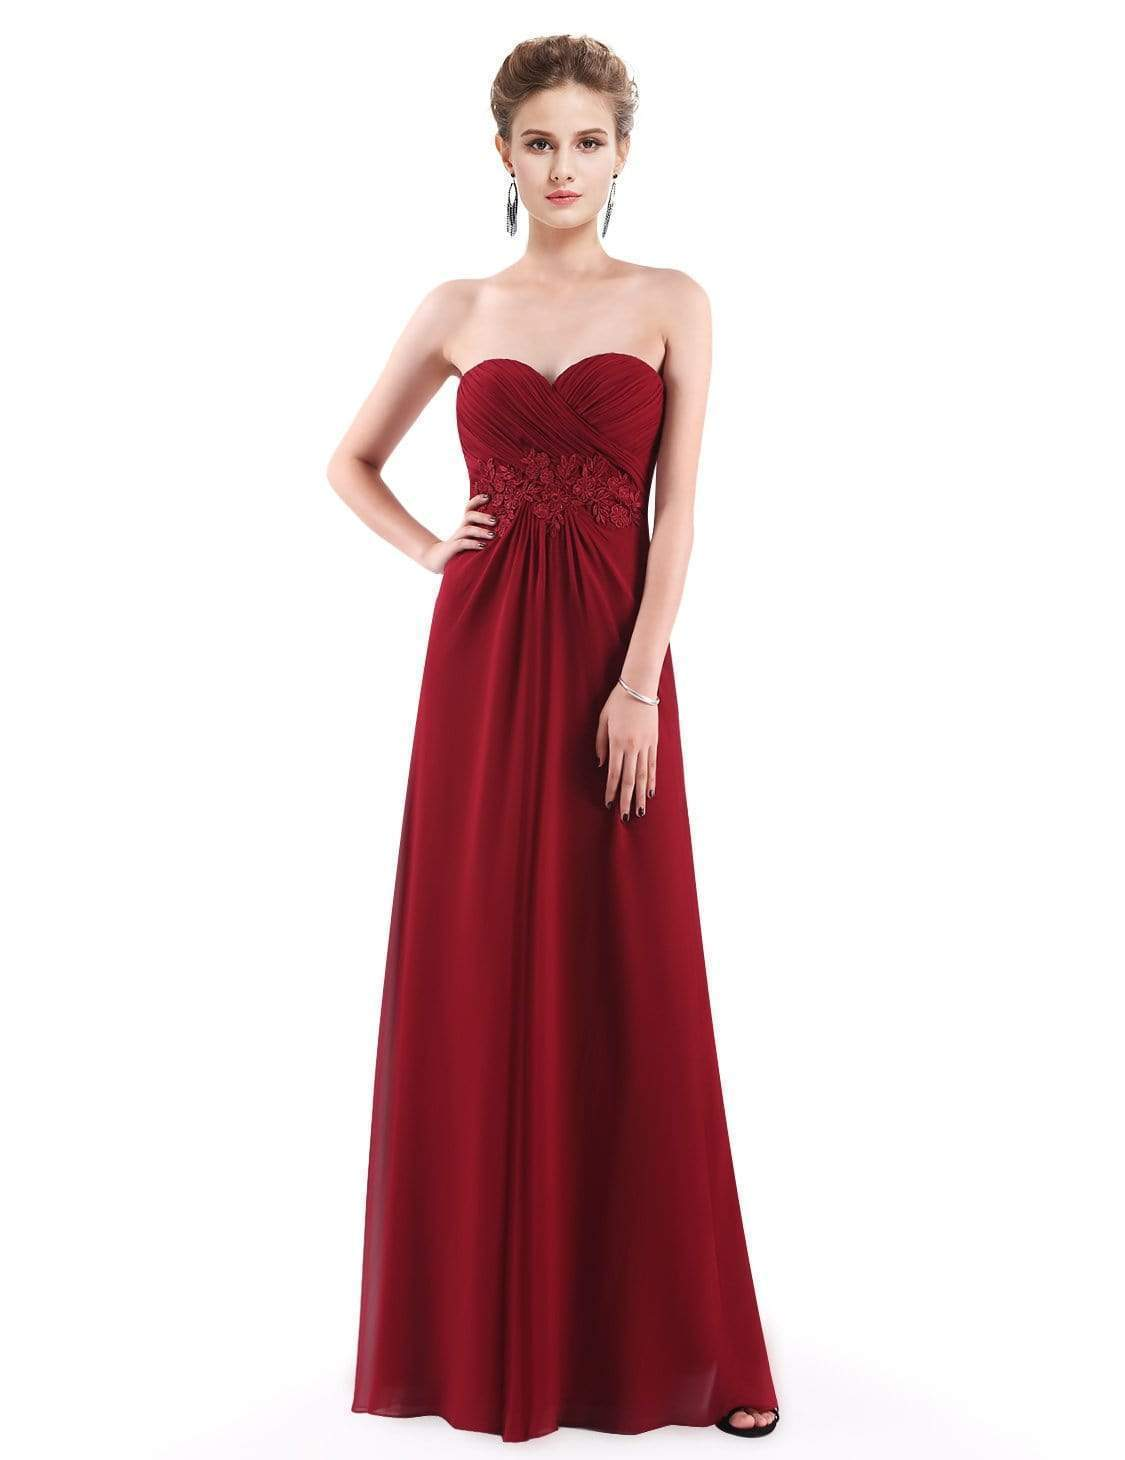 e27720f8f96ac7 Strapless Long Evening Dress with Sweetheart Neckline |Ever-Pretty ...